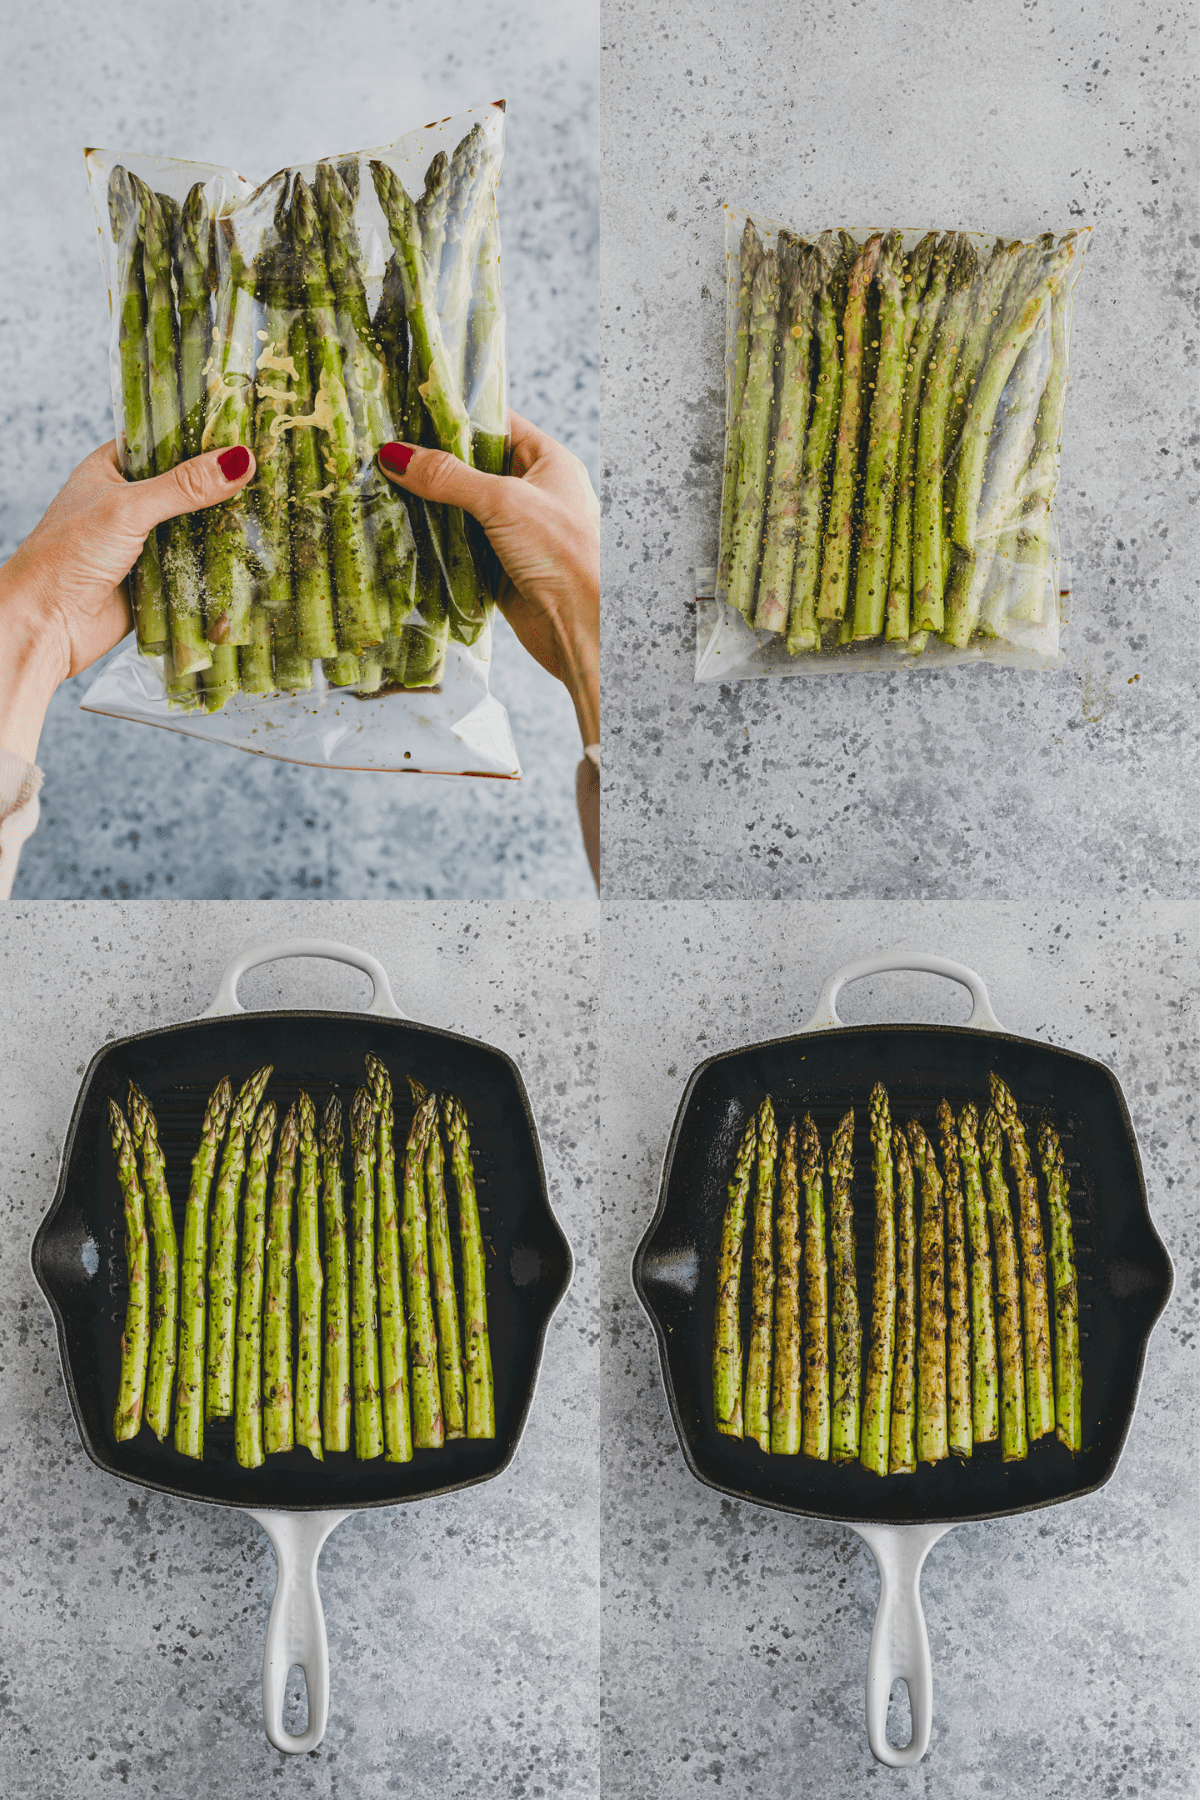 How To Grill Asparagus Recipe Step-5-8